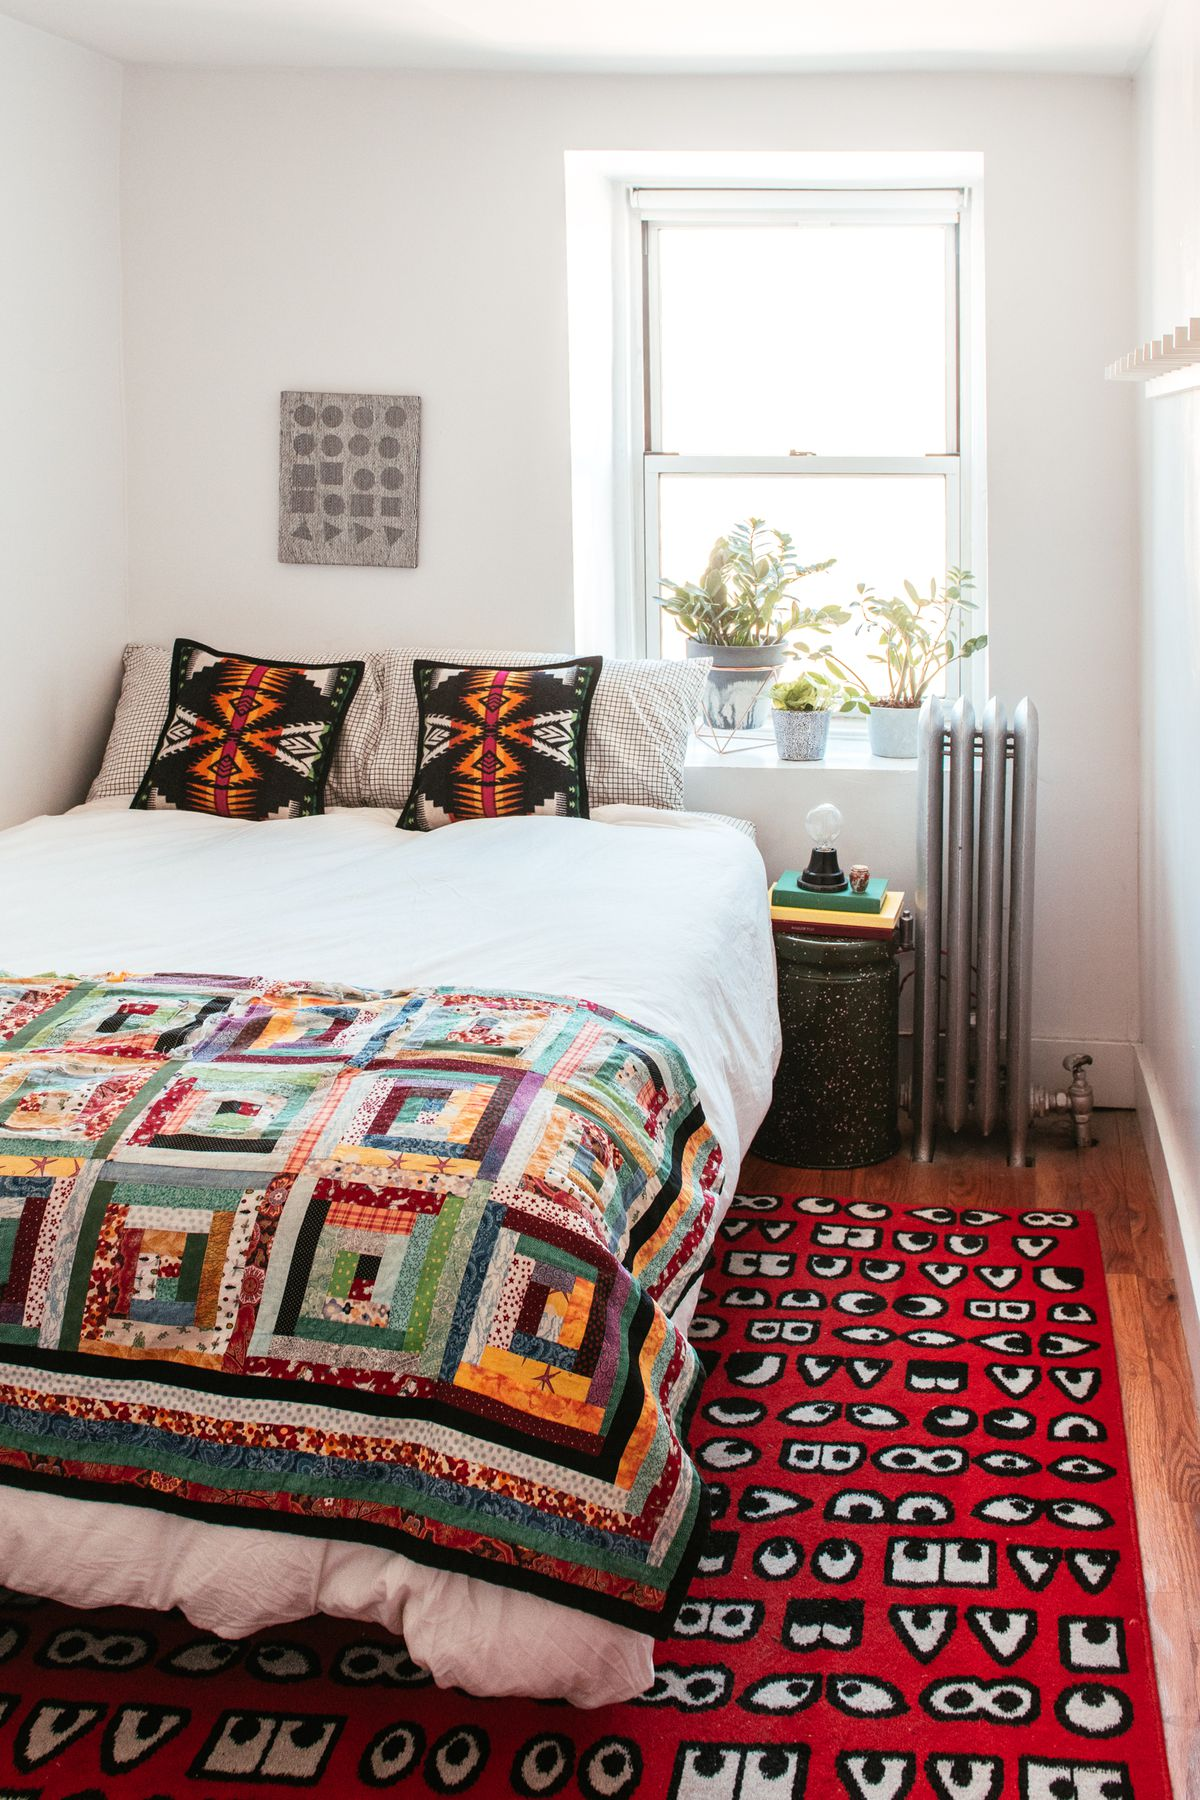 A bedroom with a bed and an end table. The bed has a patterned quilt and assorted throw pillows. There is a patterned area rug on the floor. There are multiple houseplants in the window will next to the bed.